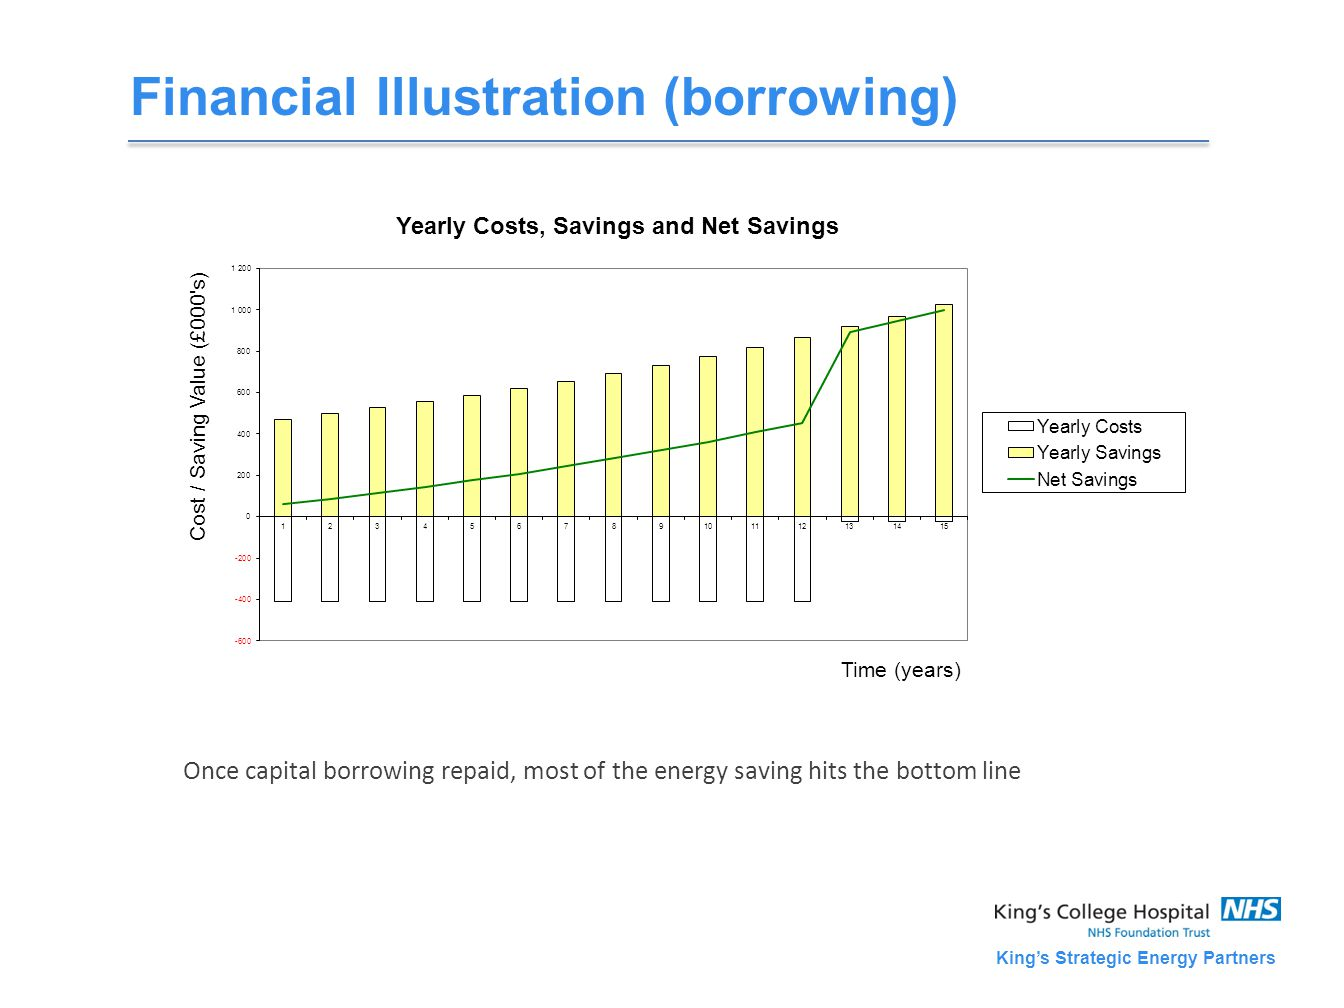 King's Strategic Energy Partners Financial Illustration (borrowing) Once capital borrowing repaid, most of the energy saving hits the bottom line